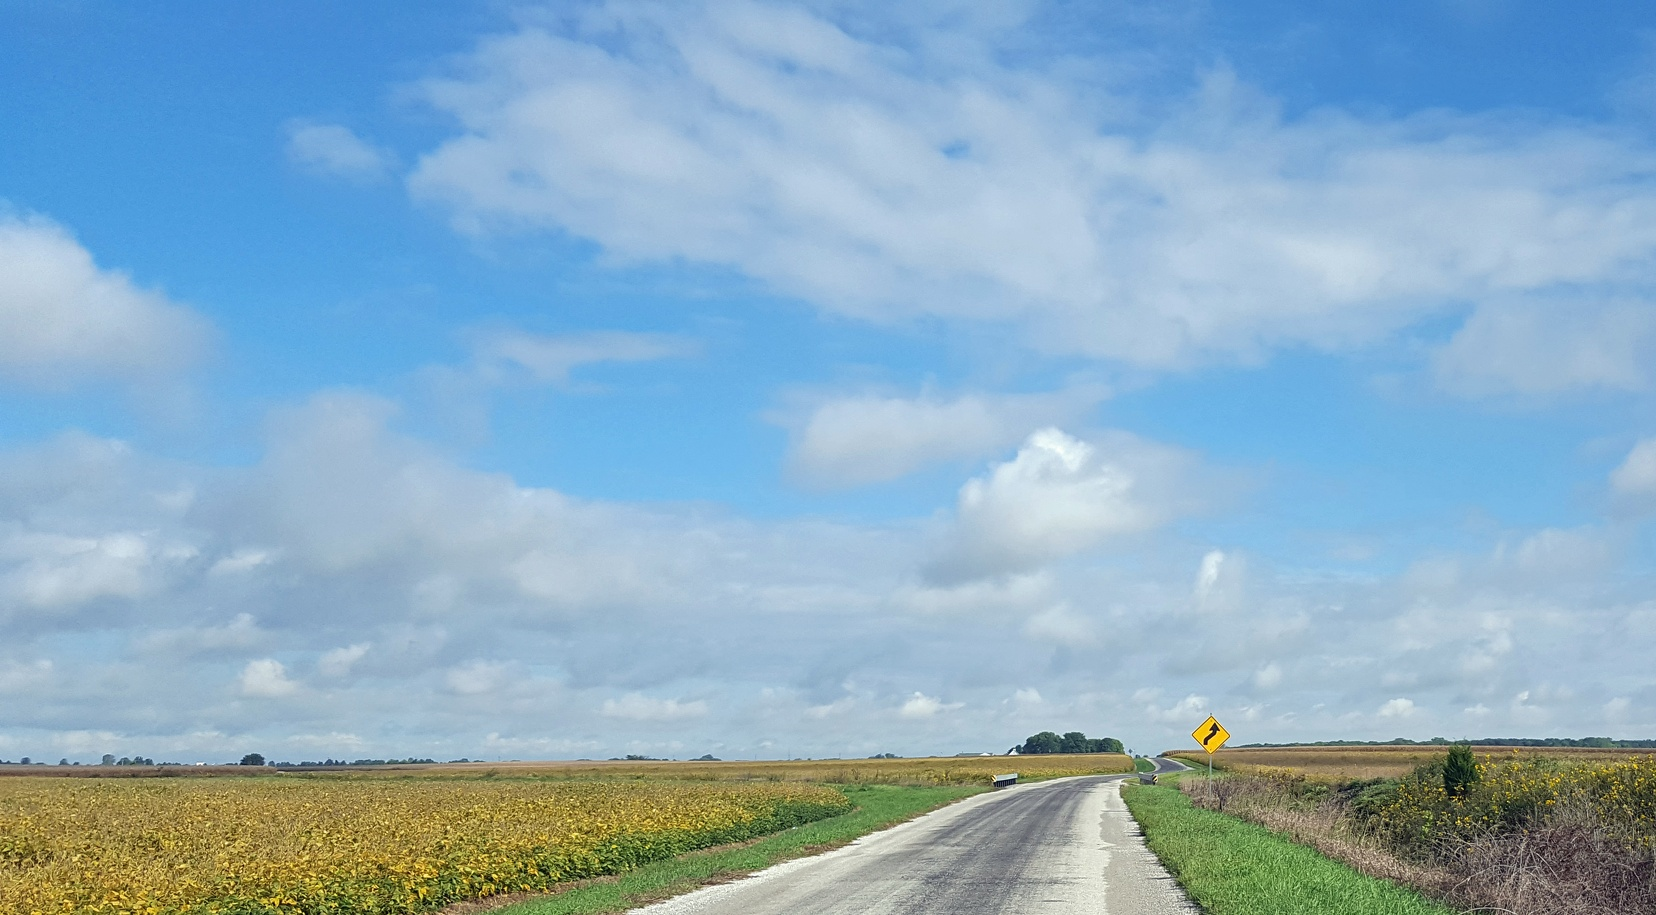 Illinois road in early fall. I spent a few hours with this view, it was lovely.